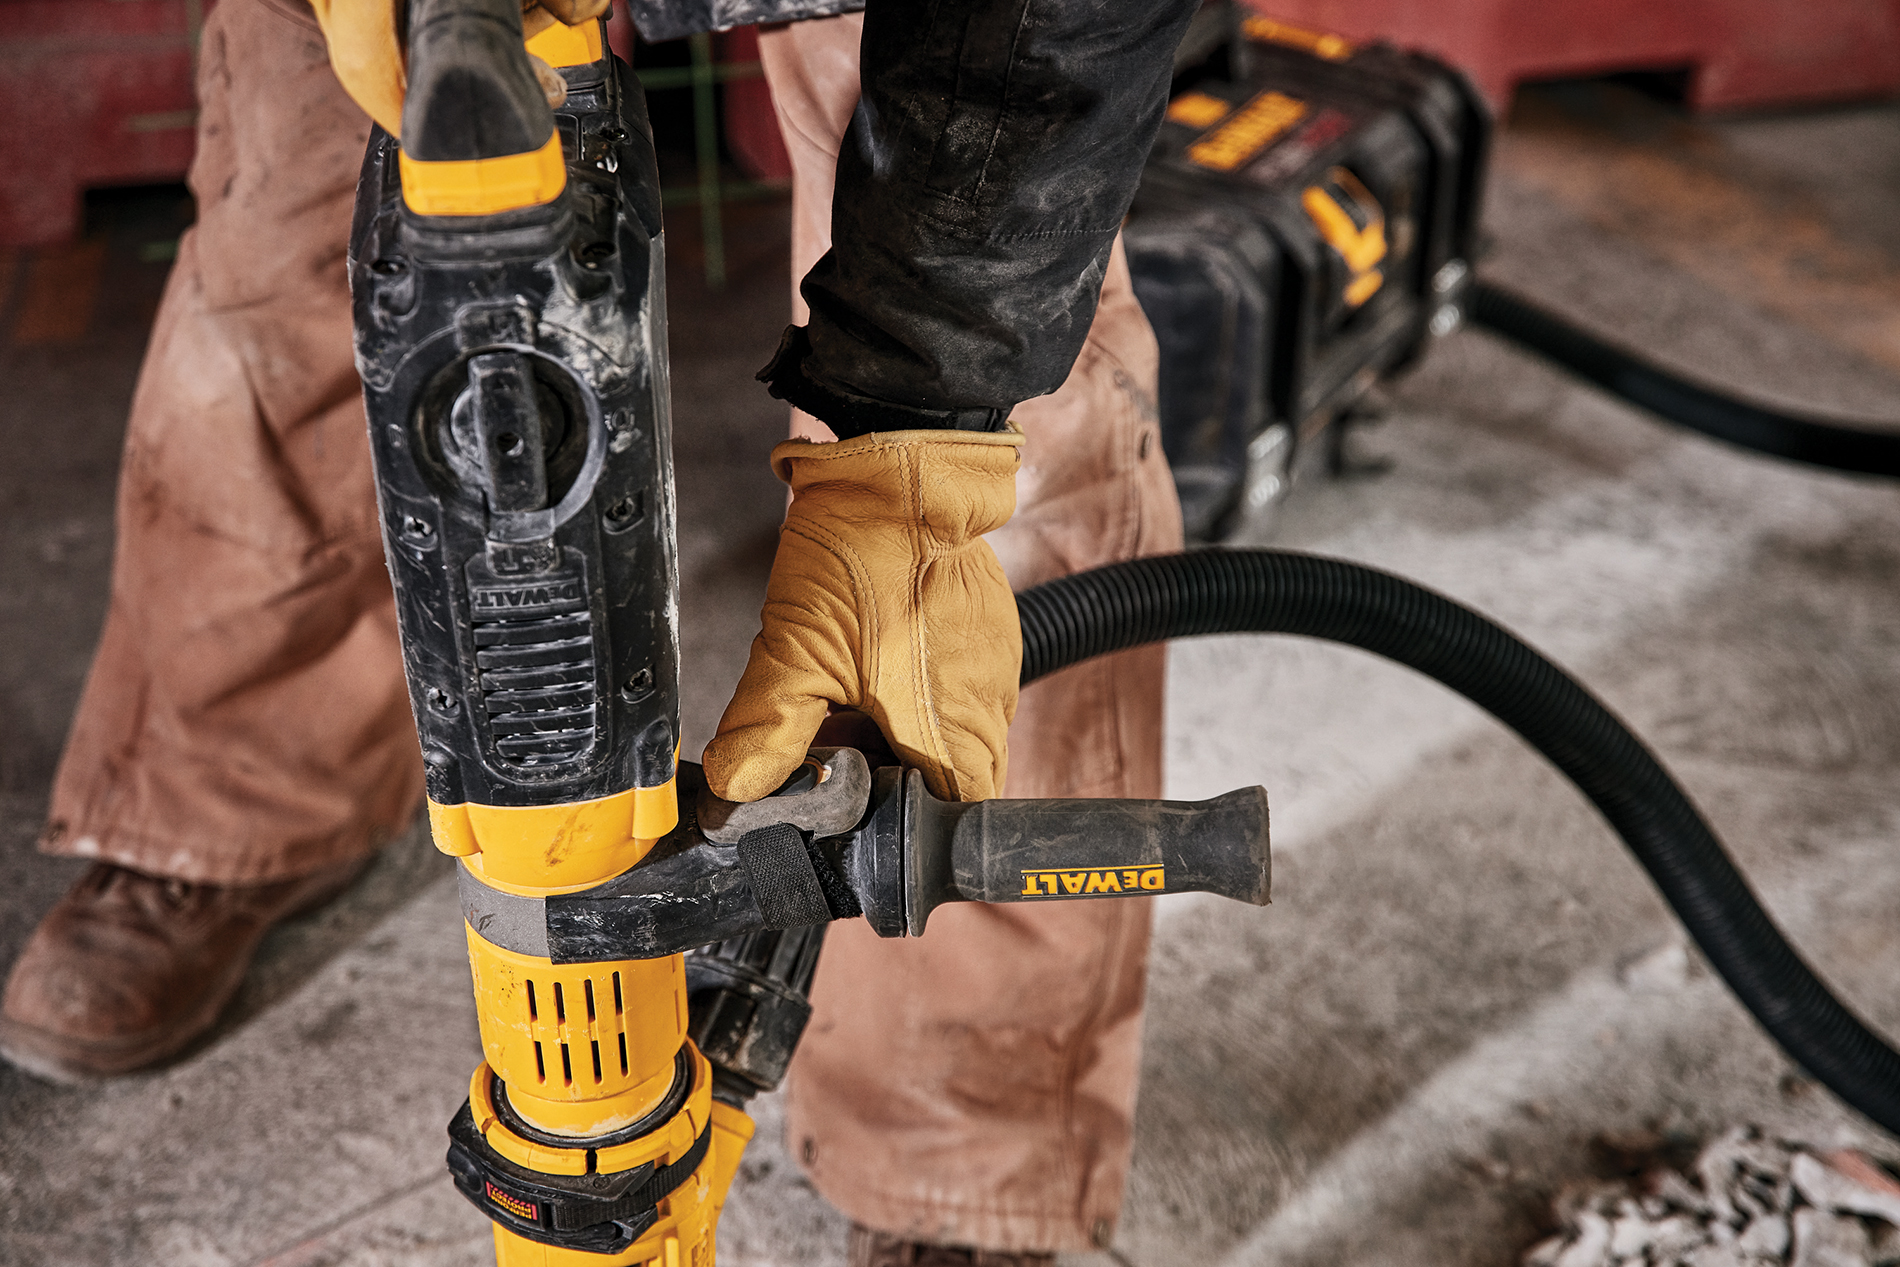 DeWalt remote-controlled dust extractor